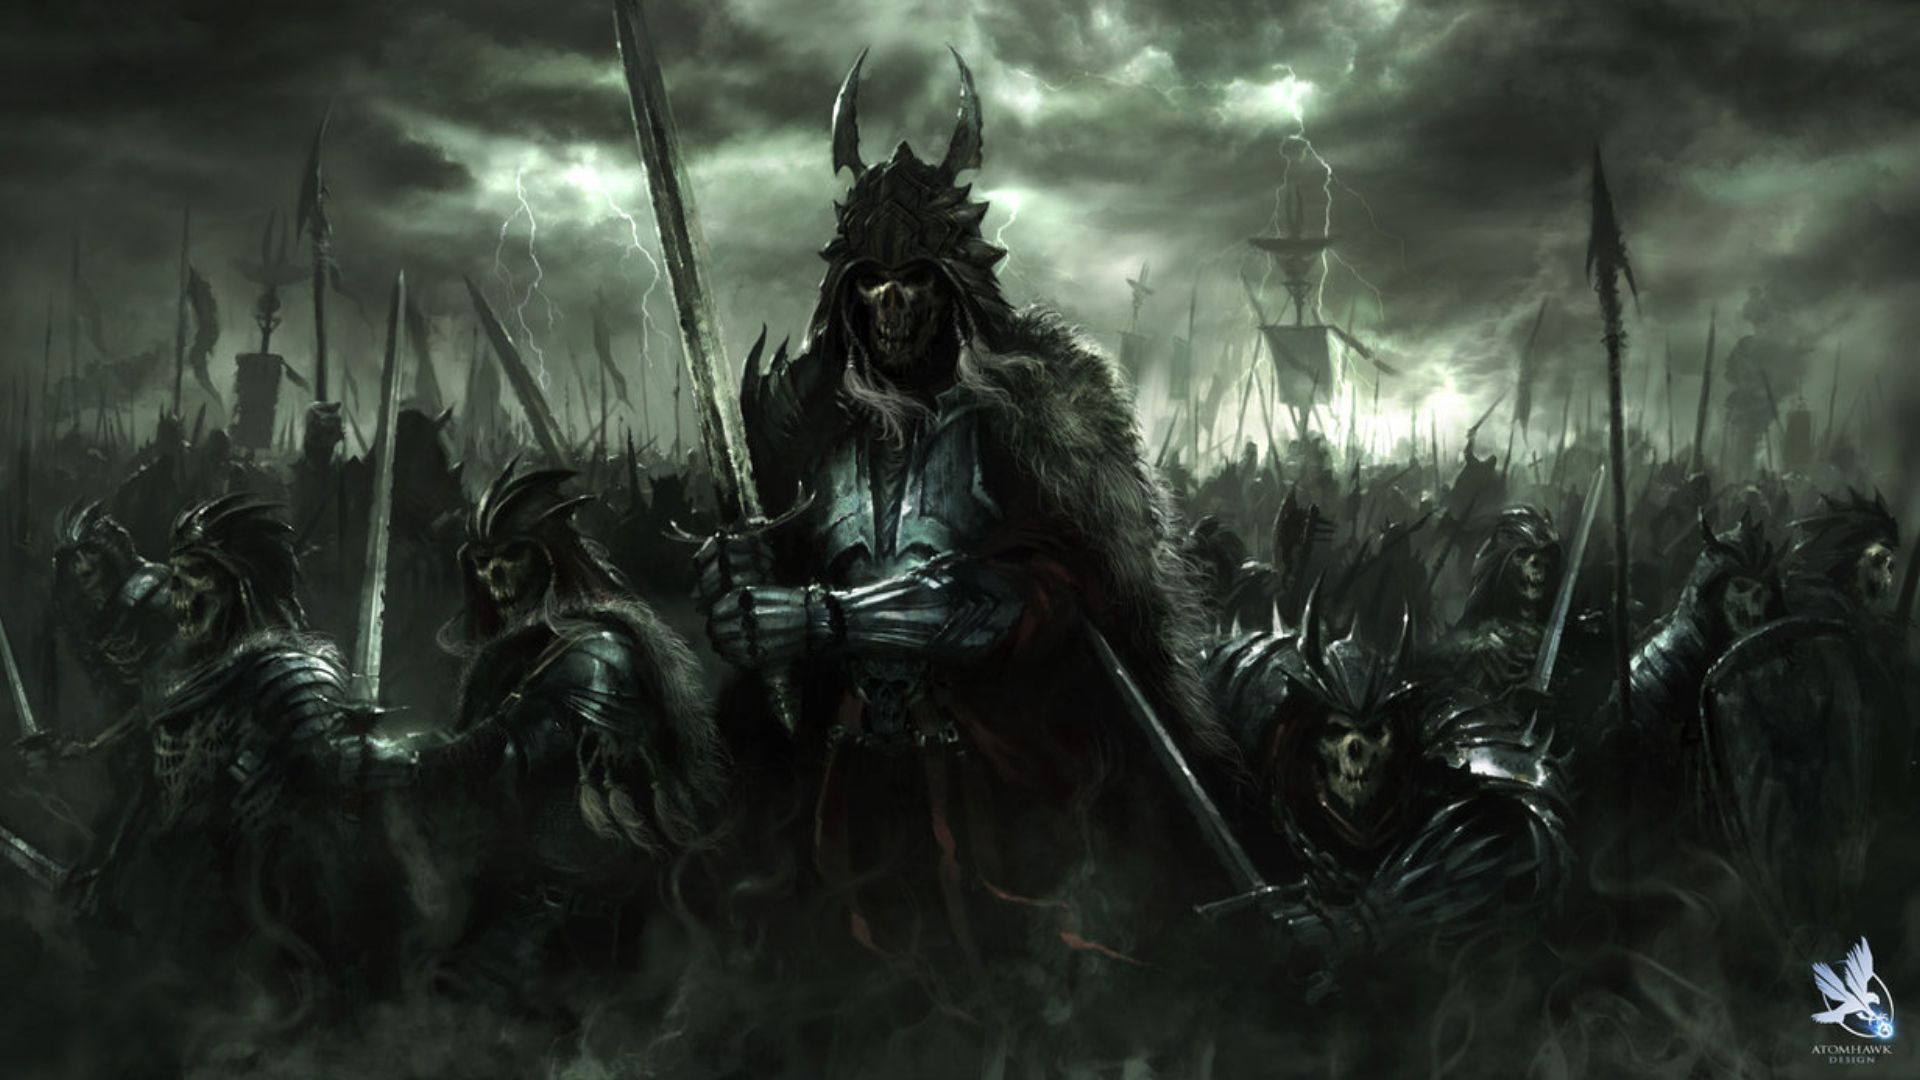 dark-art-fantasy-art-dark-horror-demon-skull-warrior-wepons-army-wallpaper-wp3604582-1